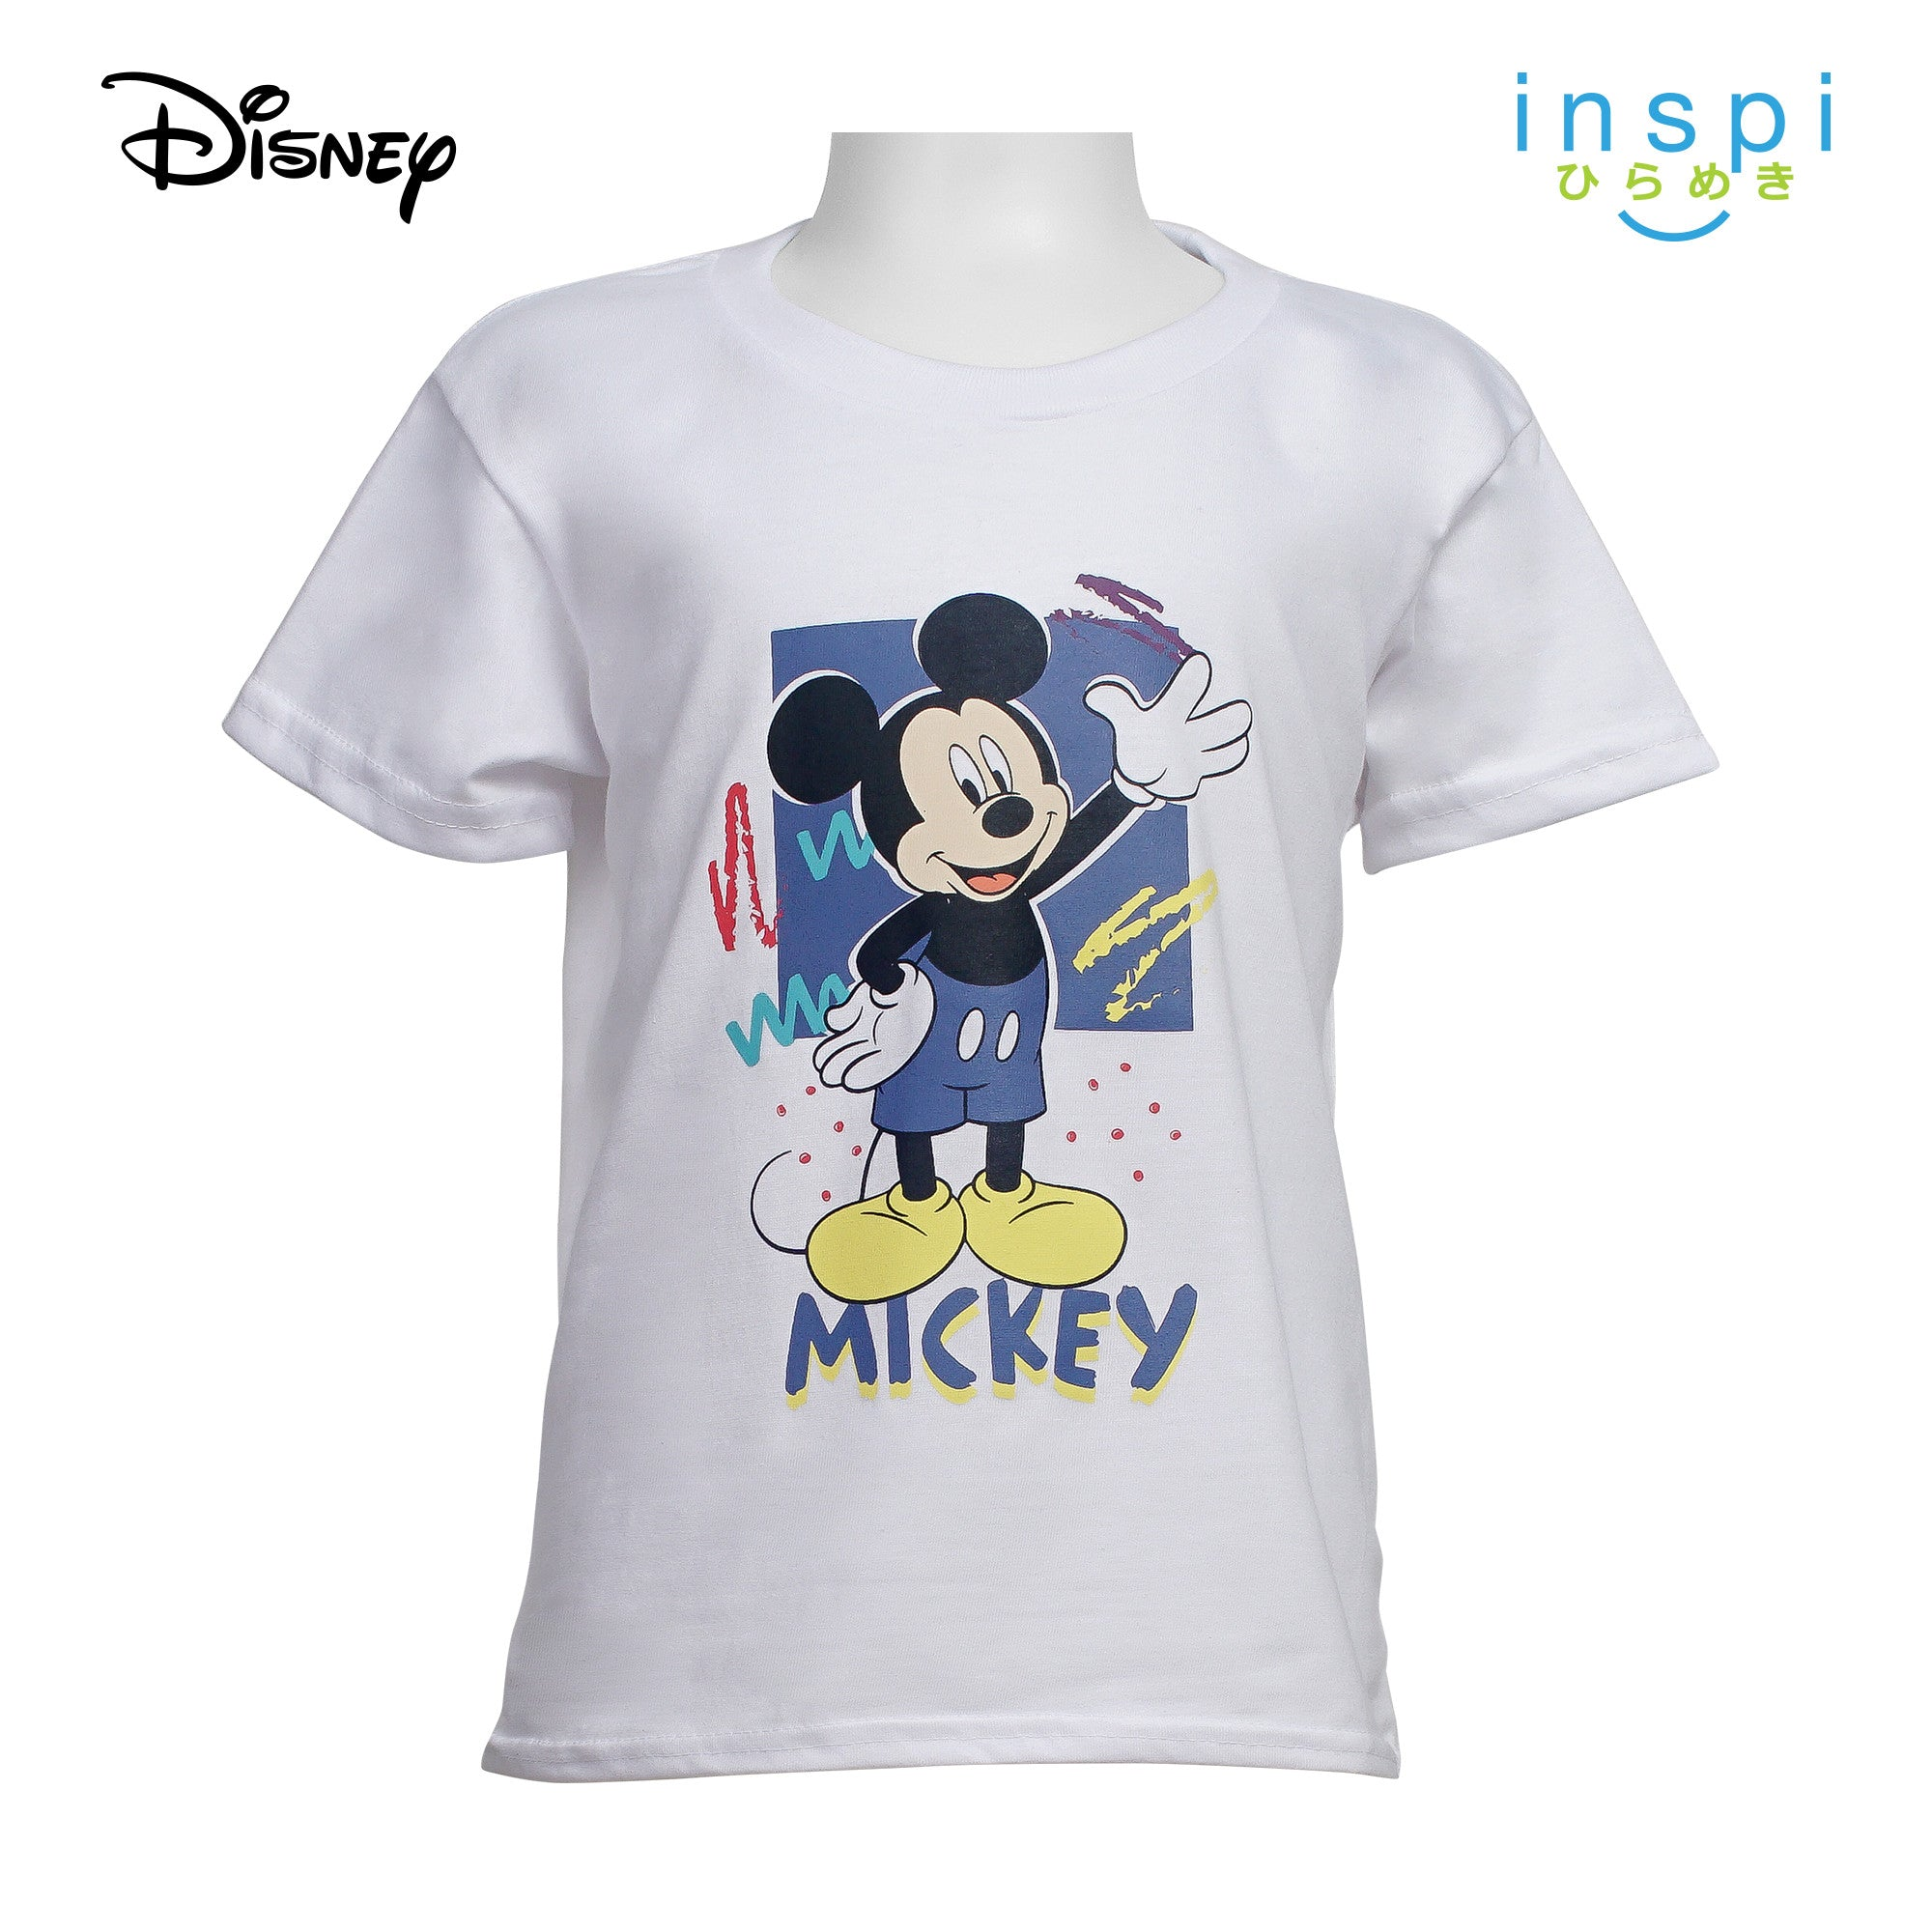 Disney Mickey Mouse High Five Tshirt in White for Boys Inspi Shirt